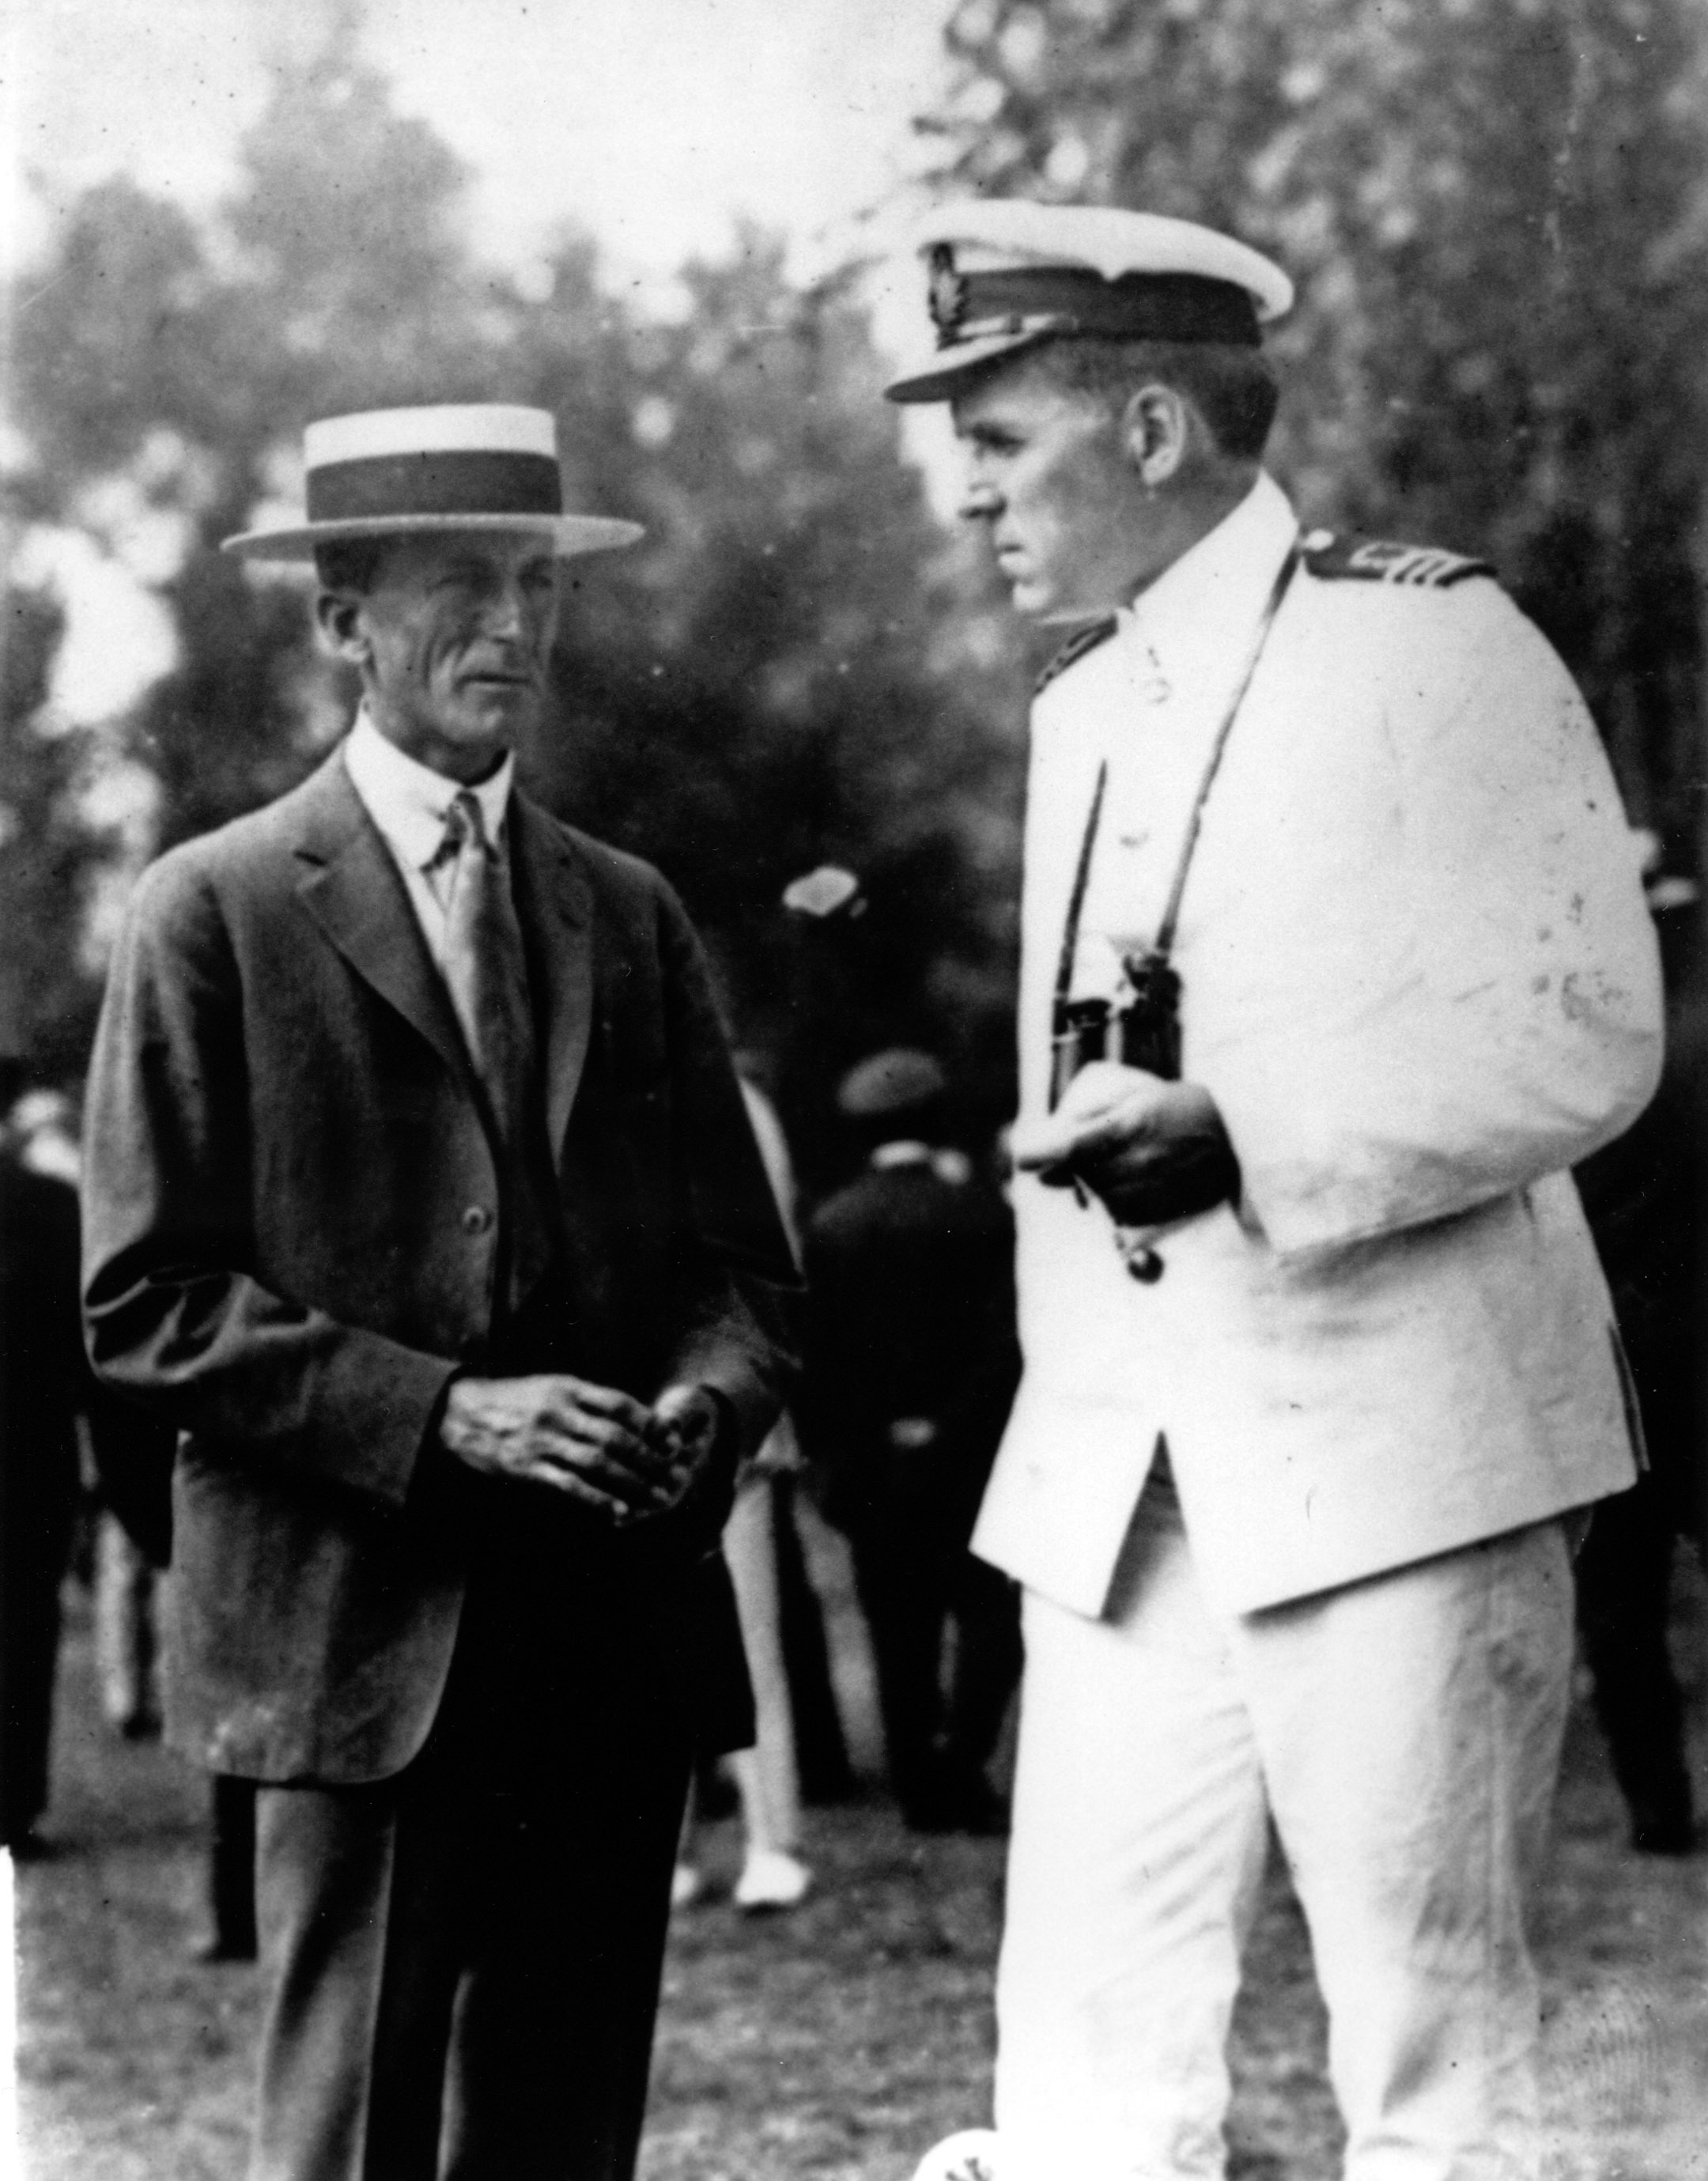 Trainer H. Guy Bedwell with Commander J.K.L. Ross (Keeneland Library Cook Collection/Museum Collection)